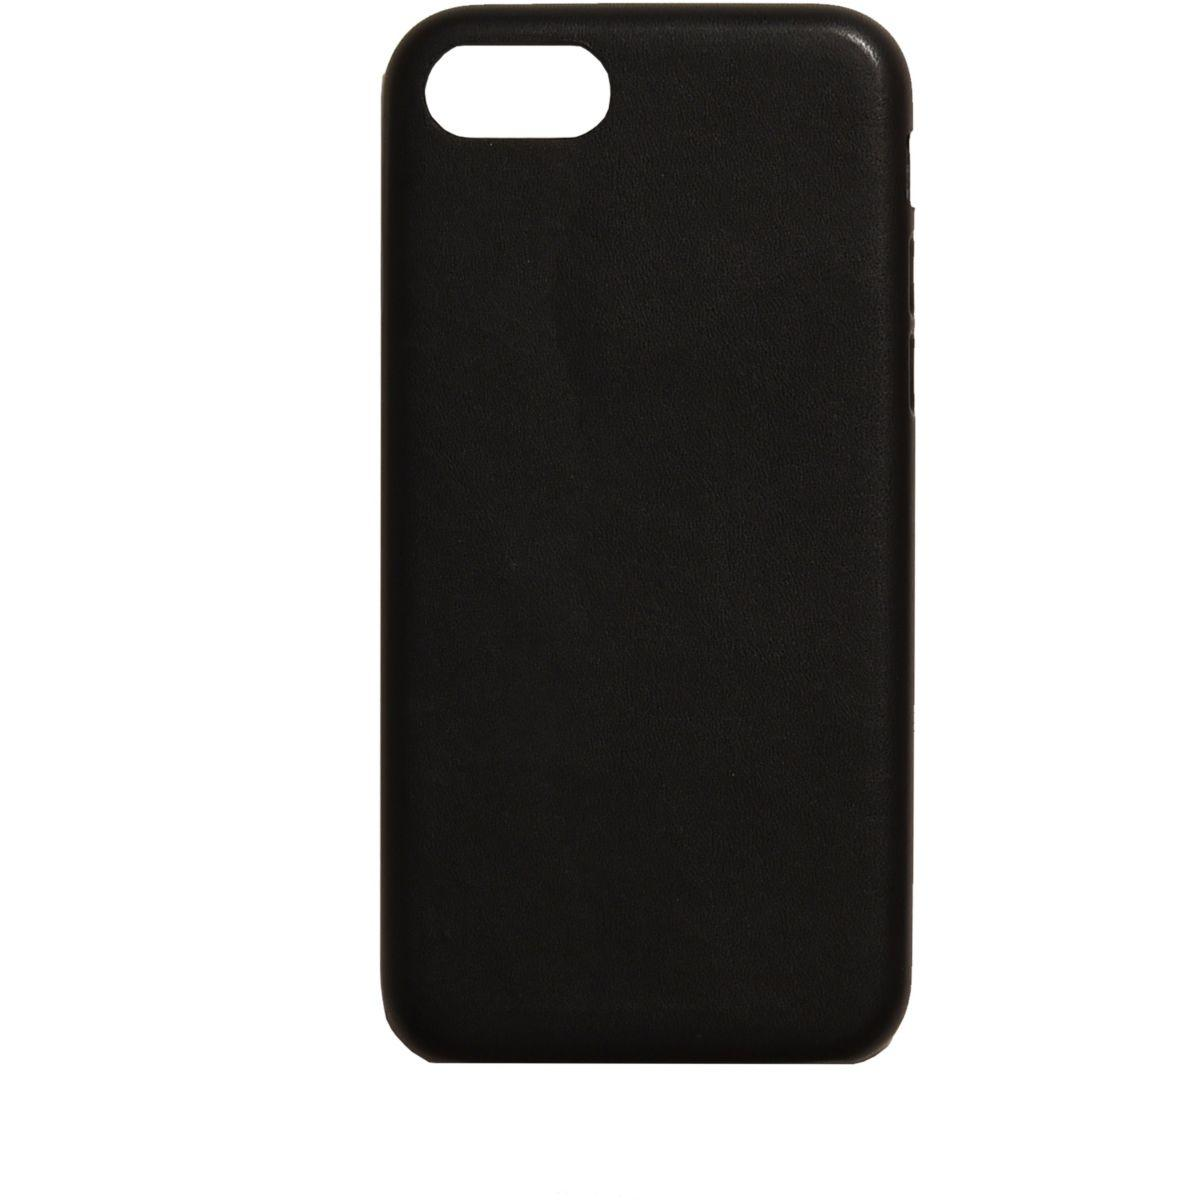 Coque adeqwat iphone 7 plus noir (photo)